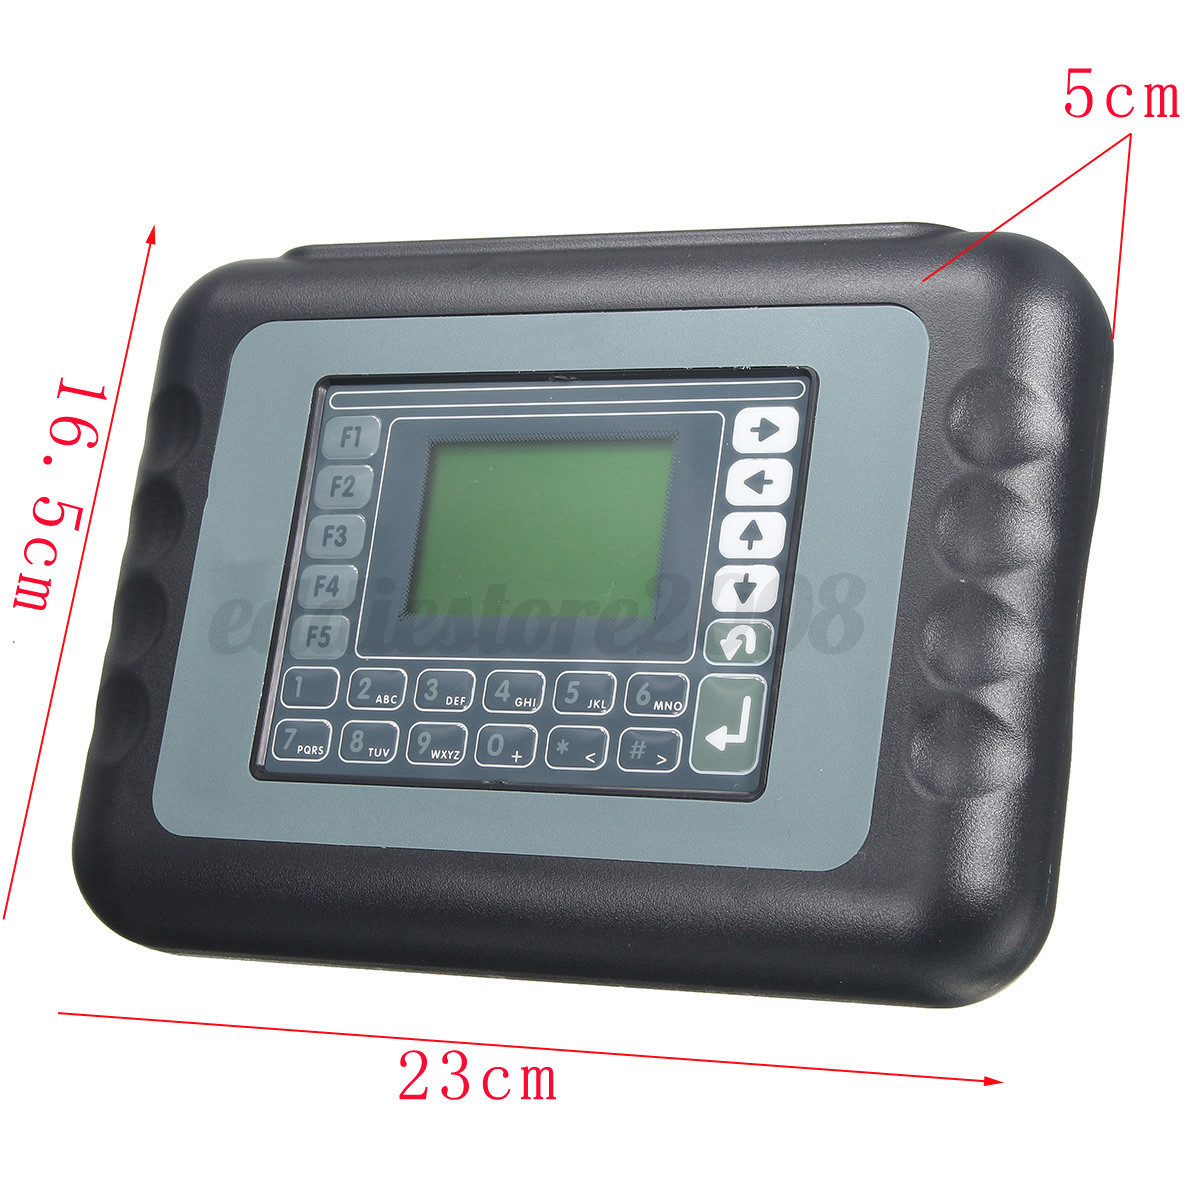 Automobile Sbb V33 02 Maker Universal Remote Car Programmer Multi Languages New For Sale In Hk